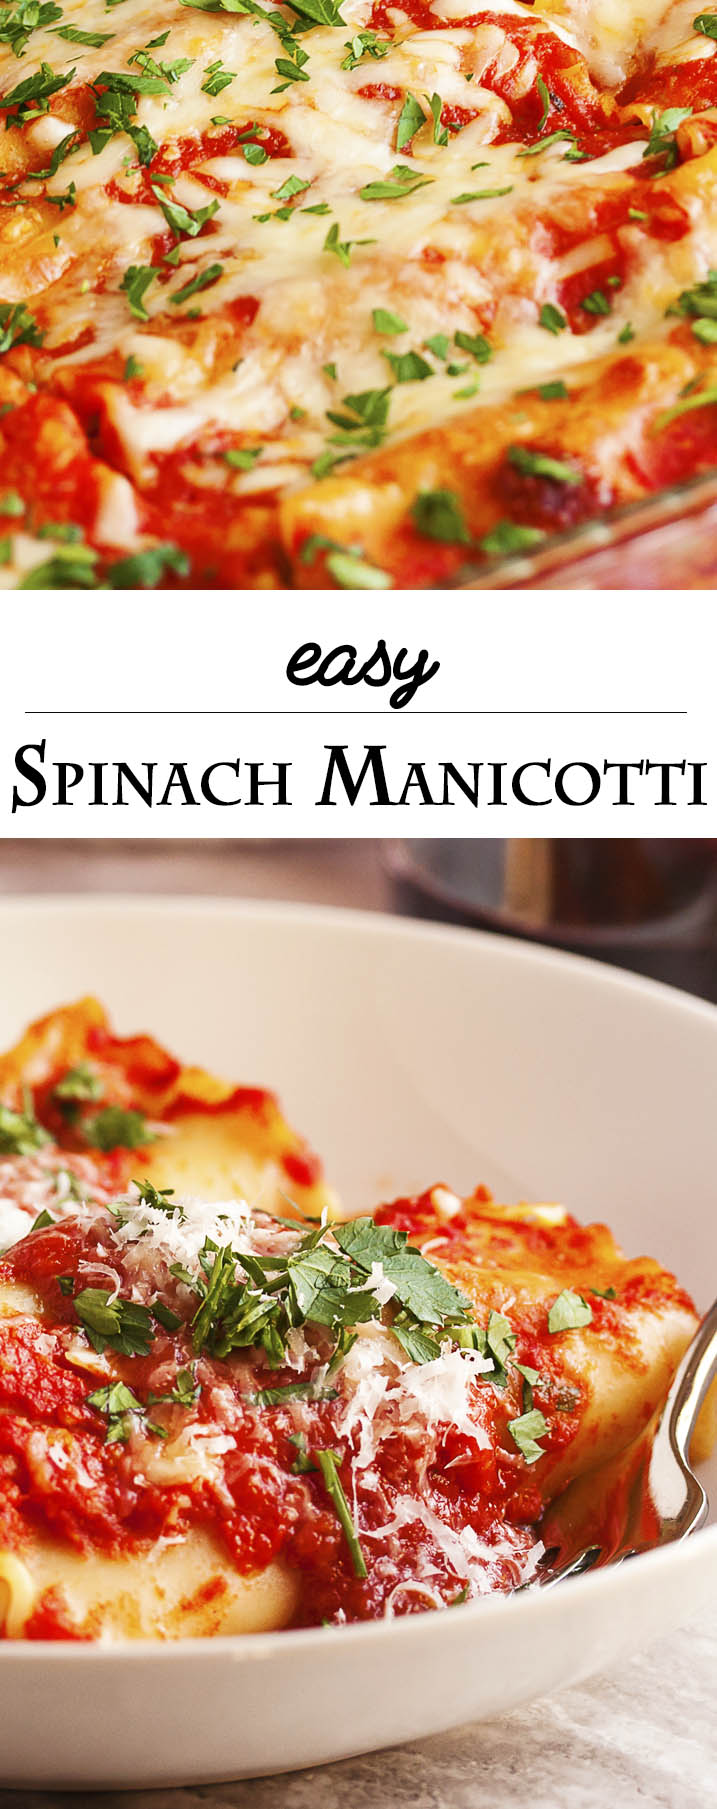 Easy Spinach Manicotti - This manicotti full of spinach and ricotta and topped with cheese is a great and easy vegetarian meal or a crowd-pleasing side dish. | justalittlebitofbacon.com